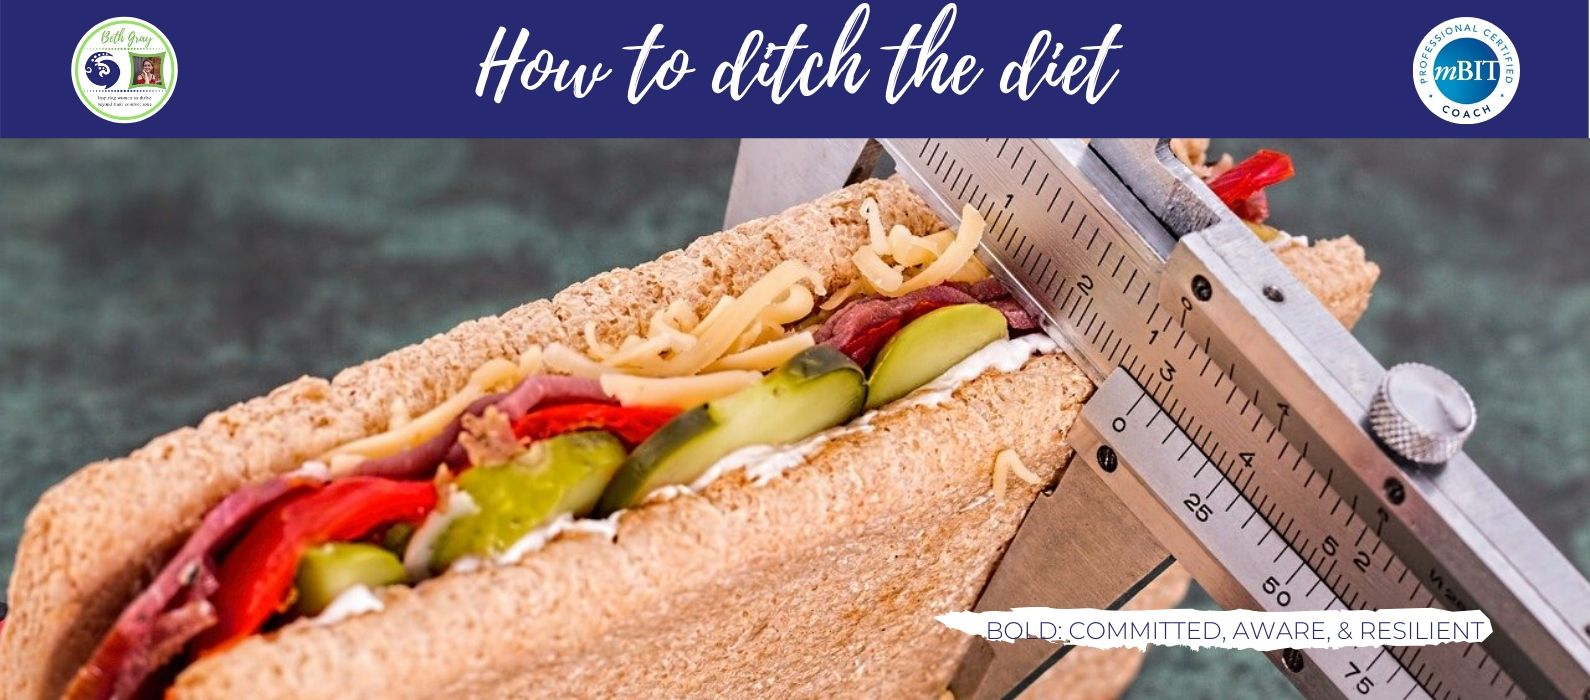 how to ditch the diet for more love and respect, ditch the diet and face the feelings, inner energy,